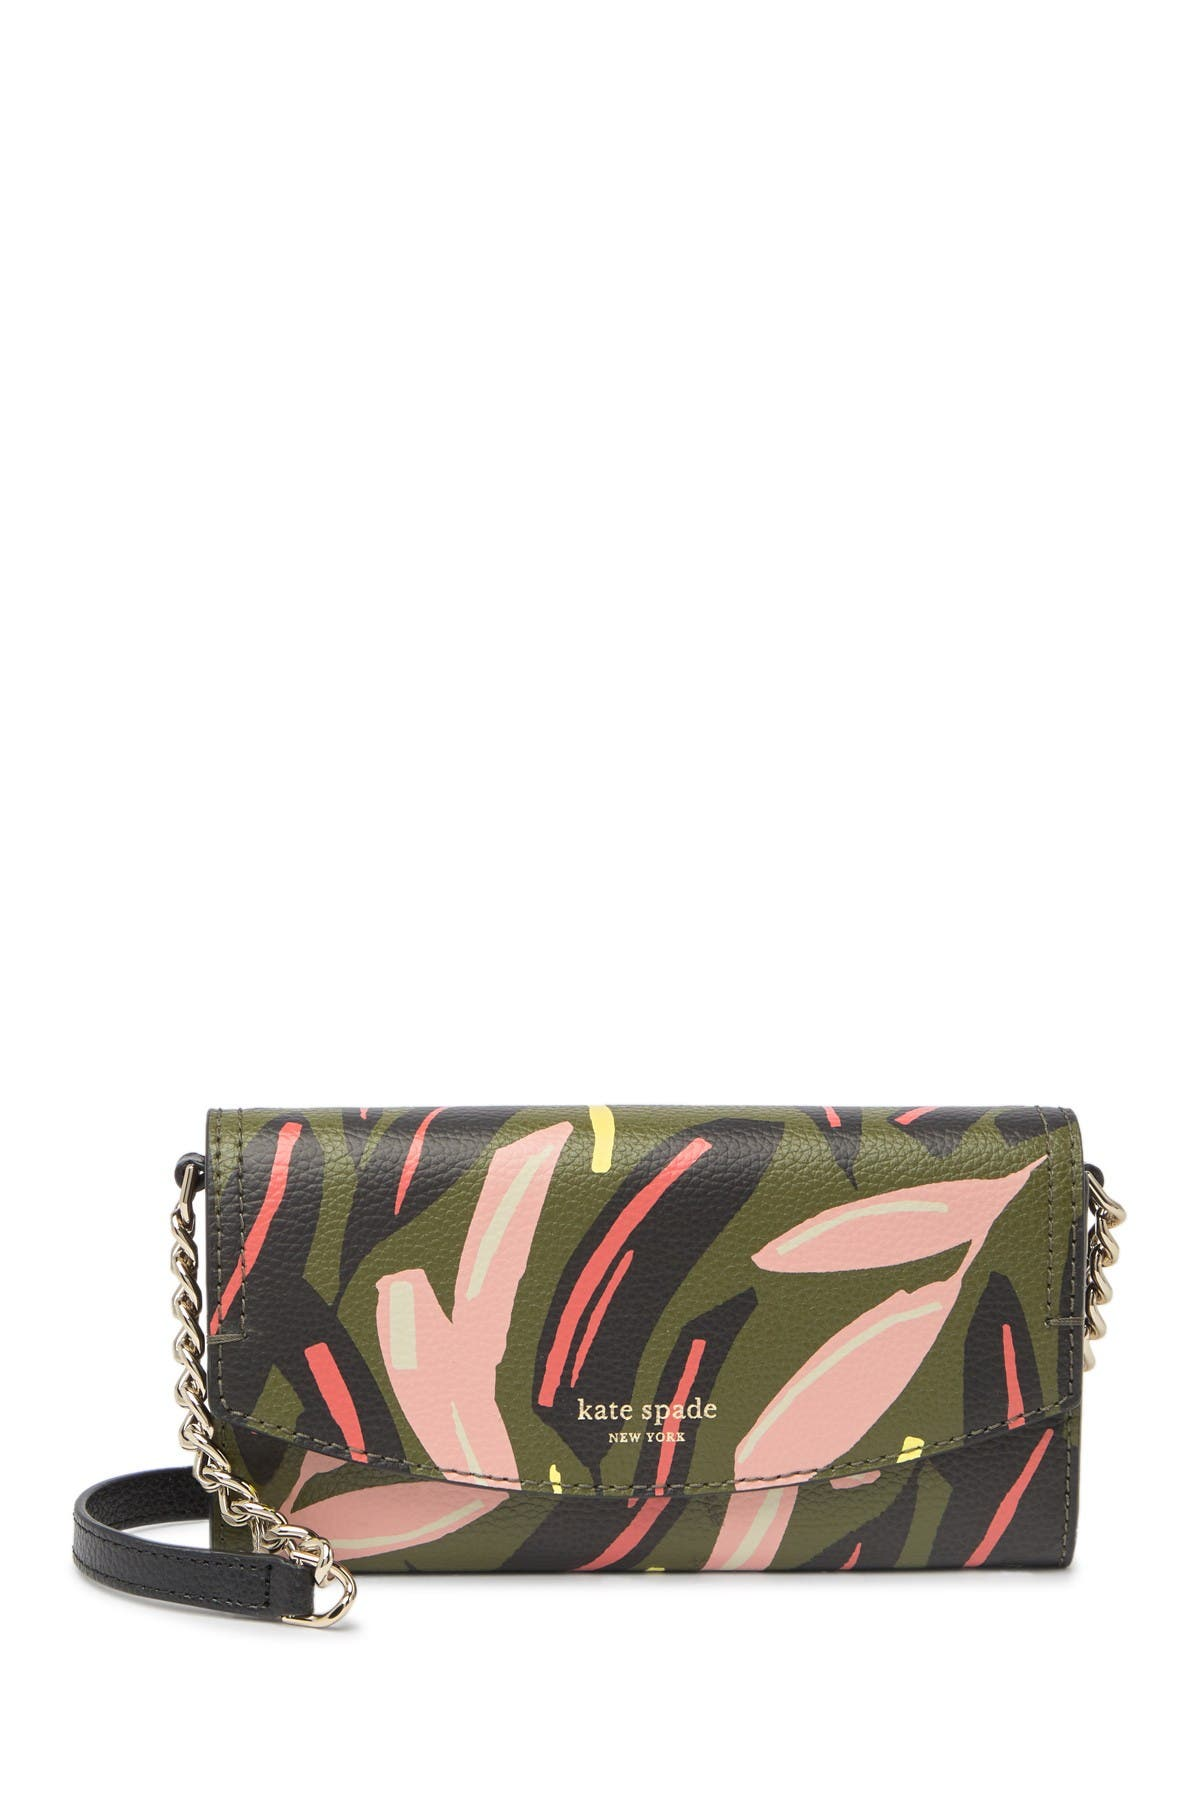 Image of kate spade new york leather eva modern wallet crossbody bag